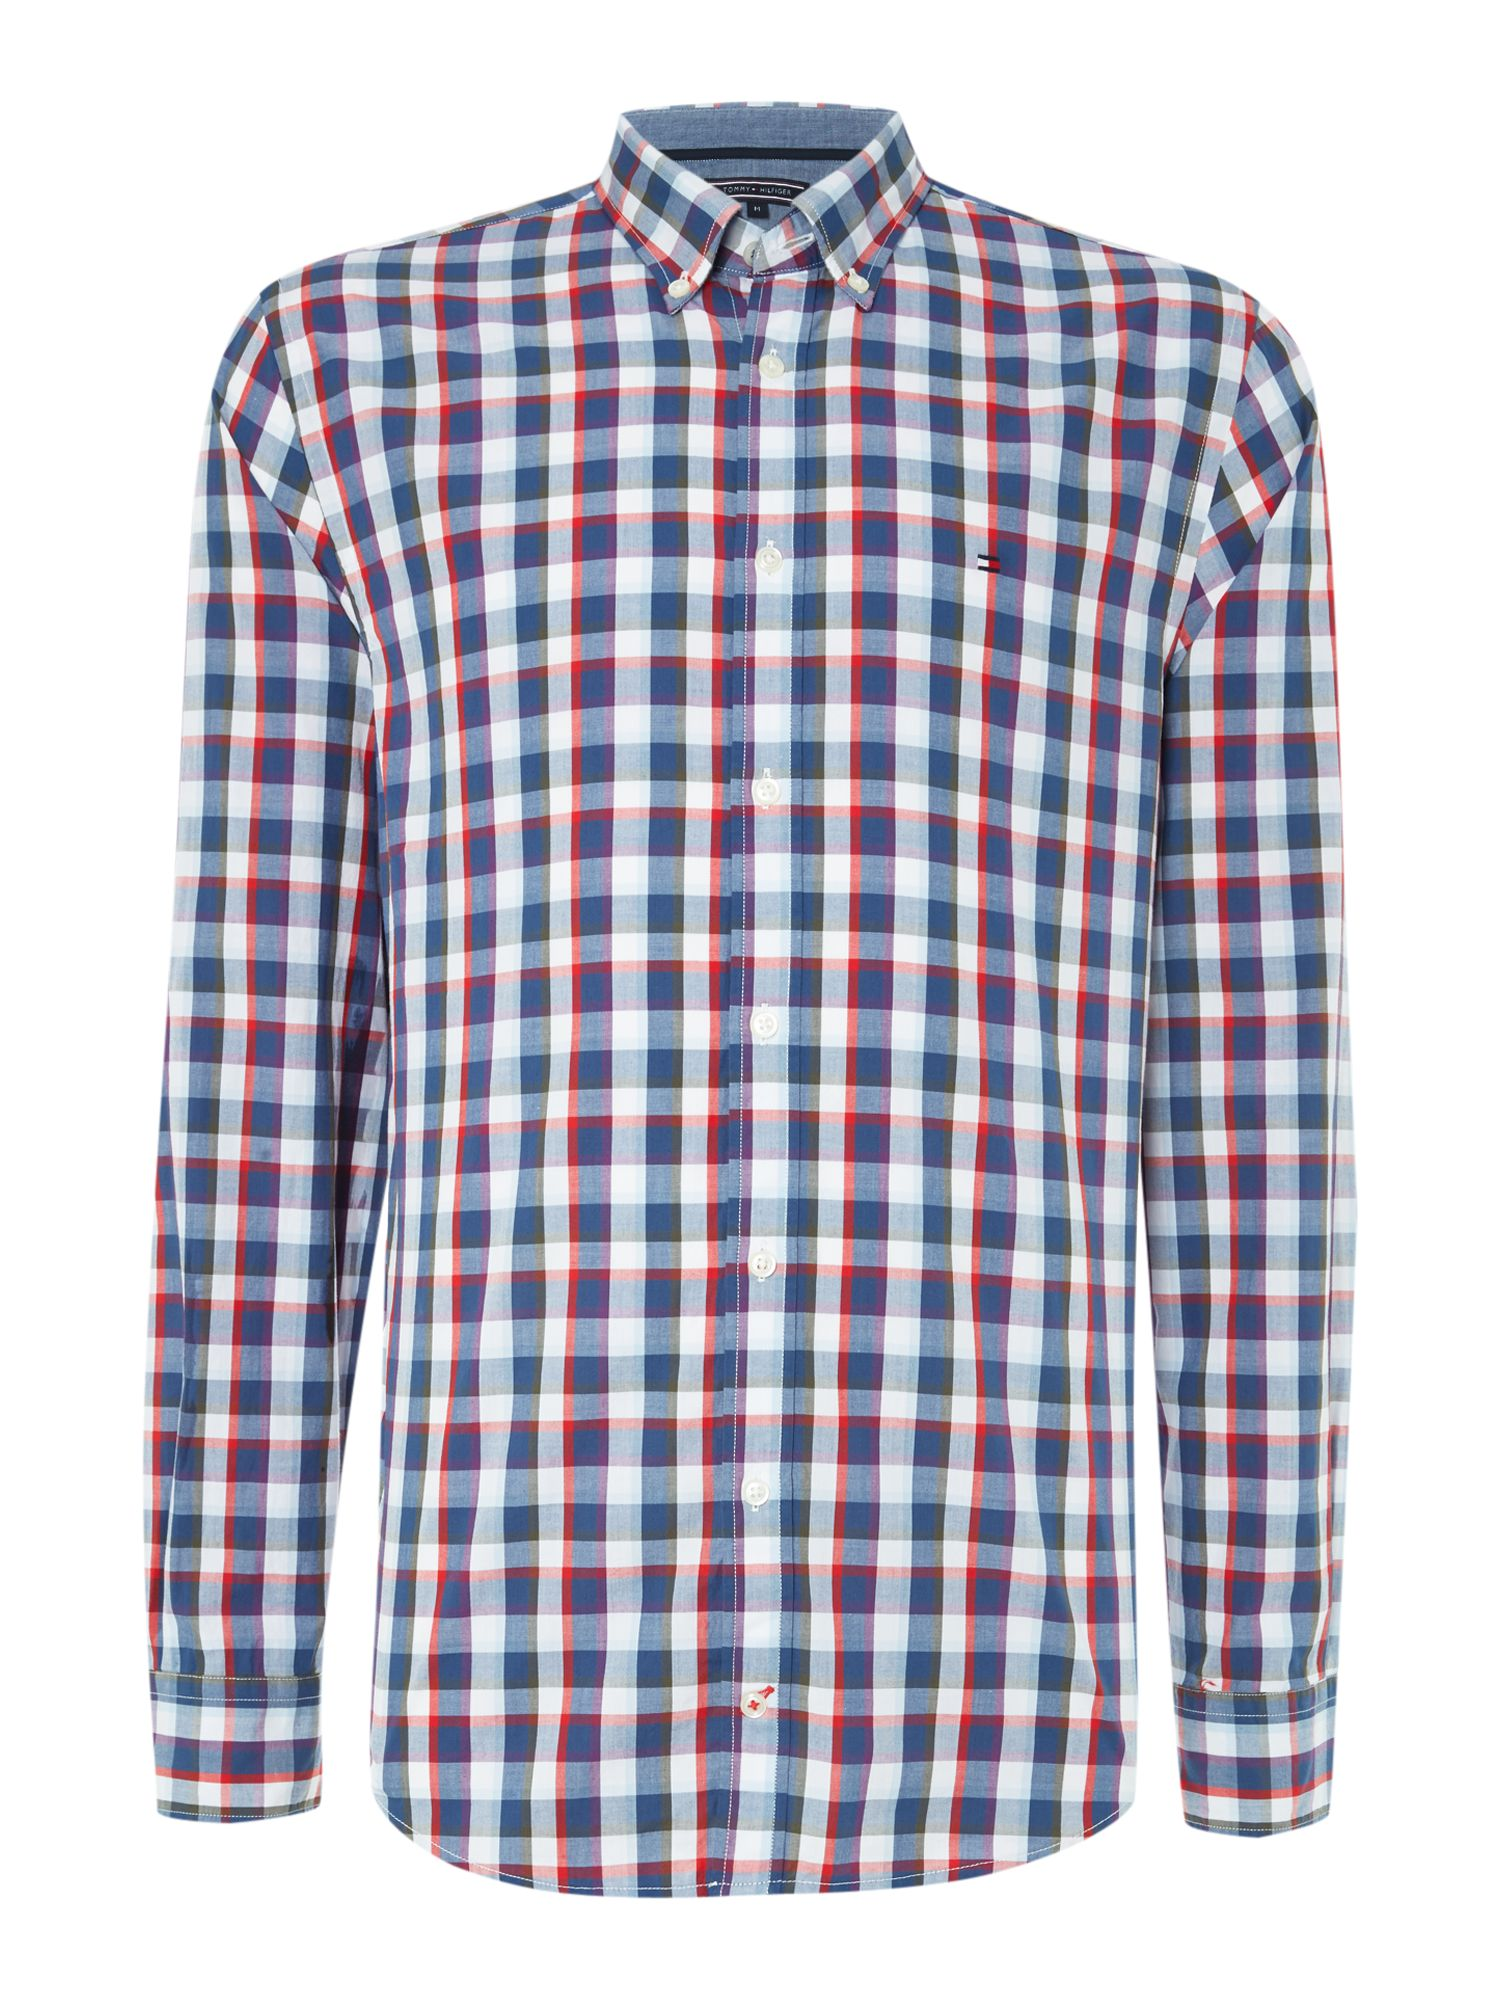 Sullivan check shirt